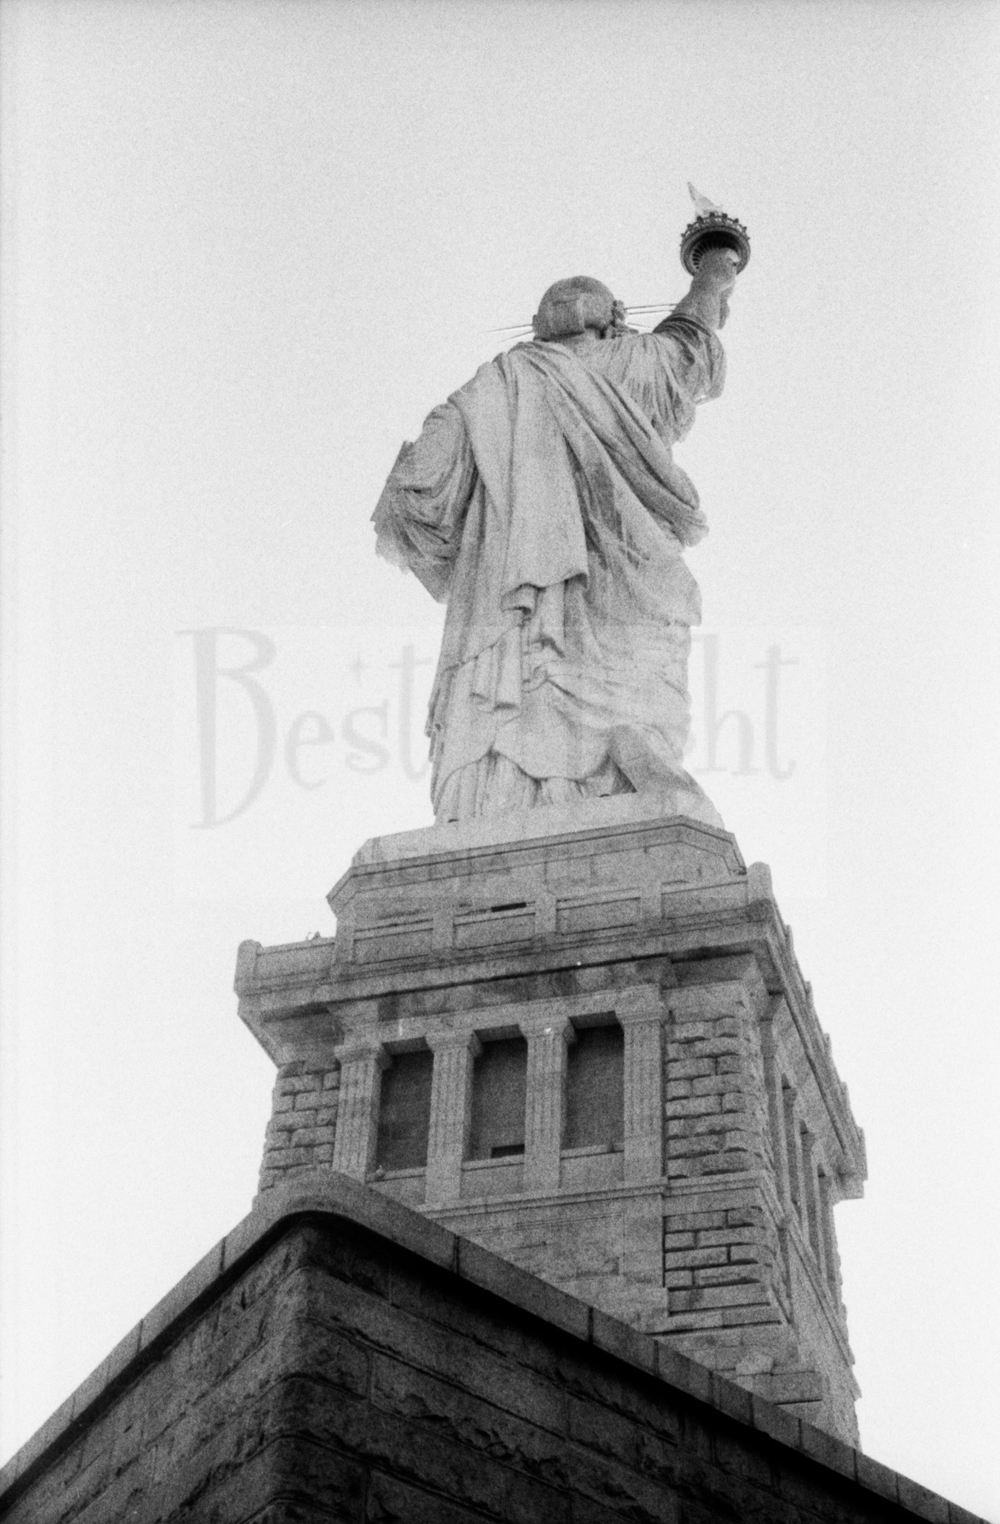 Fuji Neopan ISO 400 Pushed to 1600 -Statue of Liberty & Old Town Alexandria_20151001-11.jpg